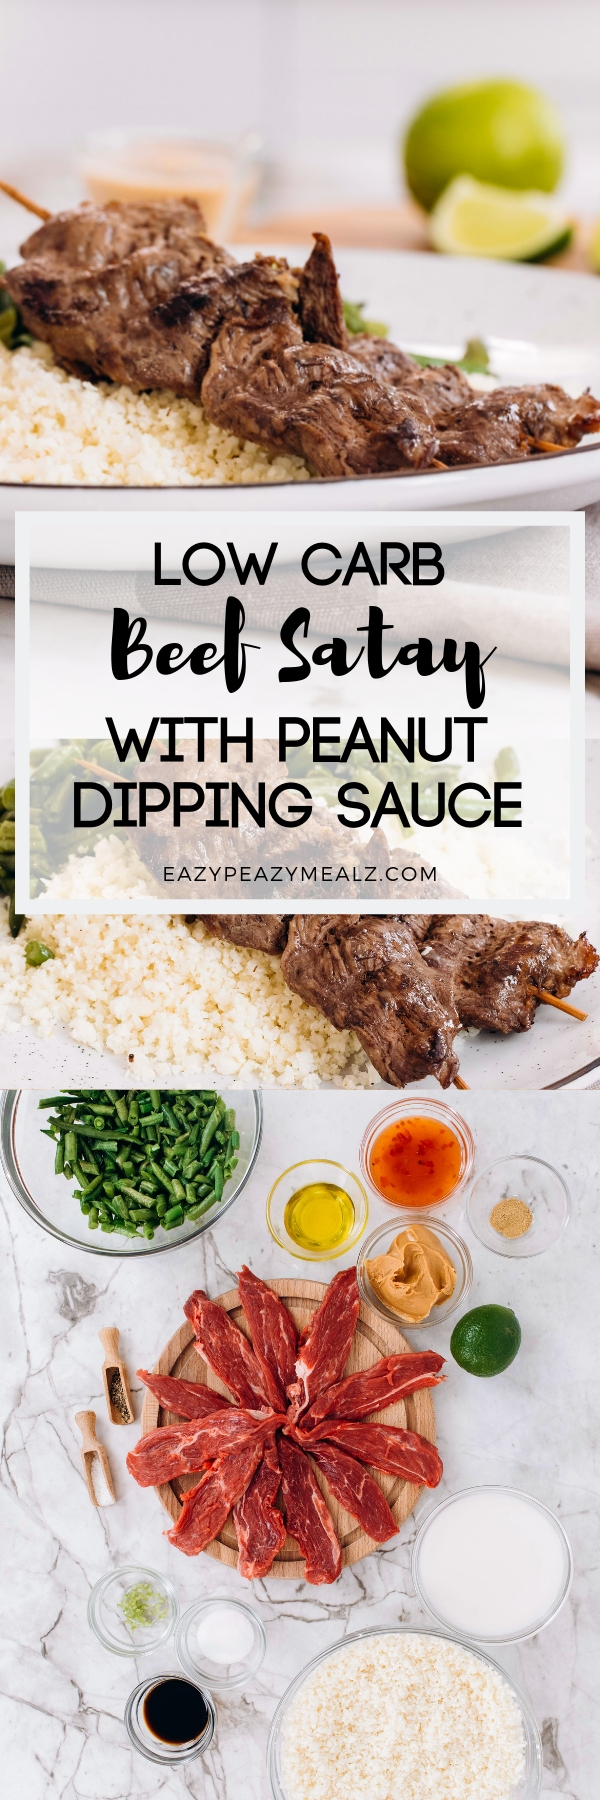 Low carb beef satay with peanut dipping sauce...the perfect keto meal.